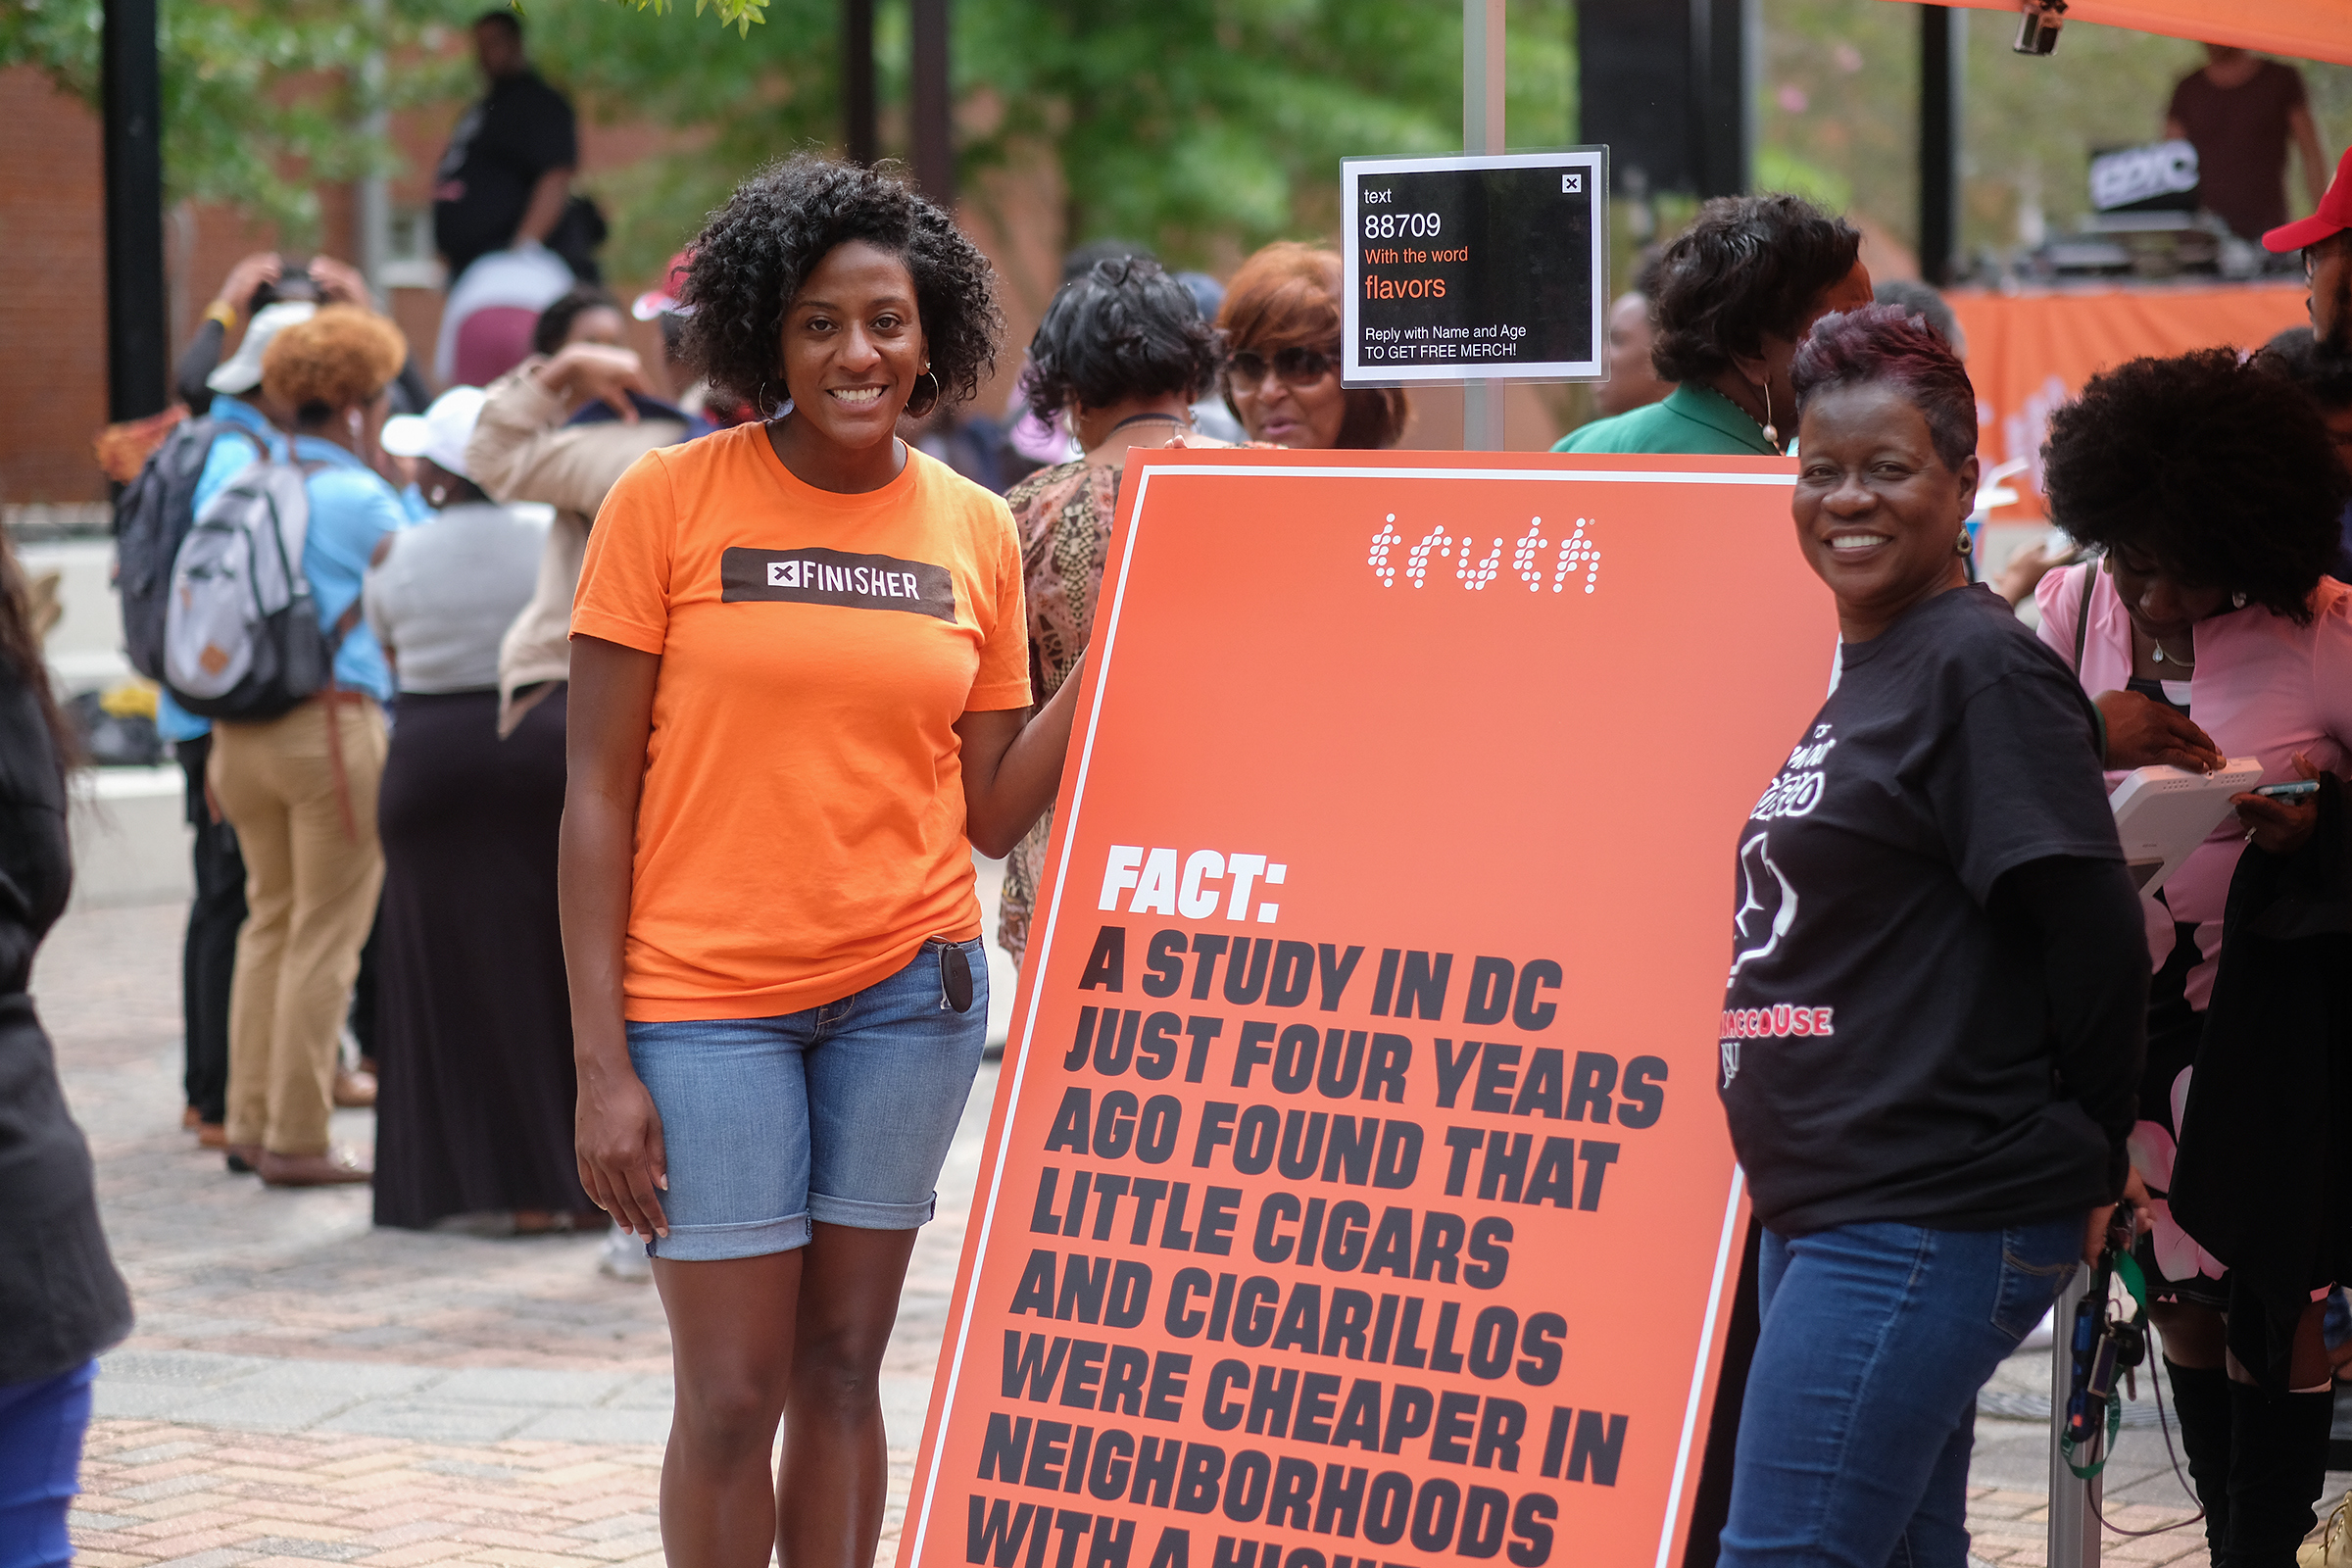 Denise Smith, manager of Truth's HBCU Initiative and Terry Bennett, prevention specialist for JSU's Metro Jackson Community Prevention coalition help to raise awareness about the dangers of smoking. (Photo by Charles A. Smith/JSU)